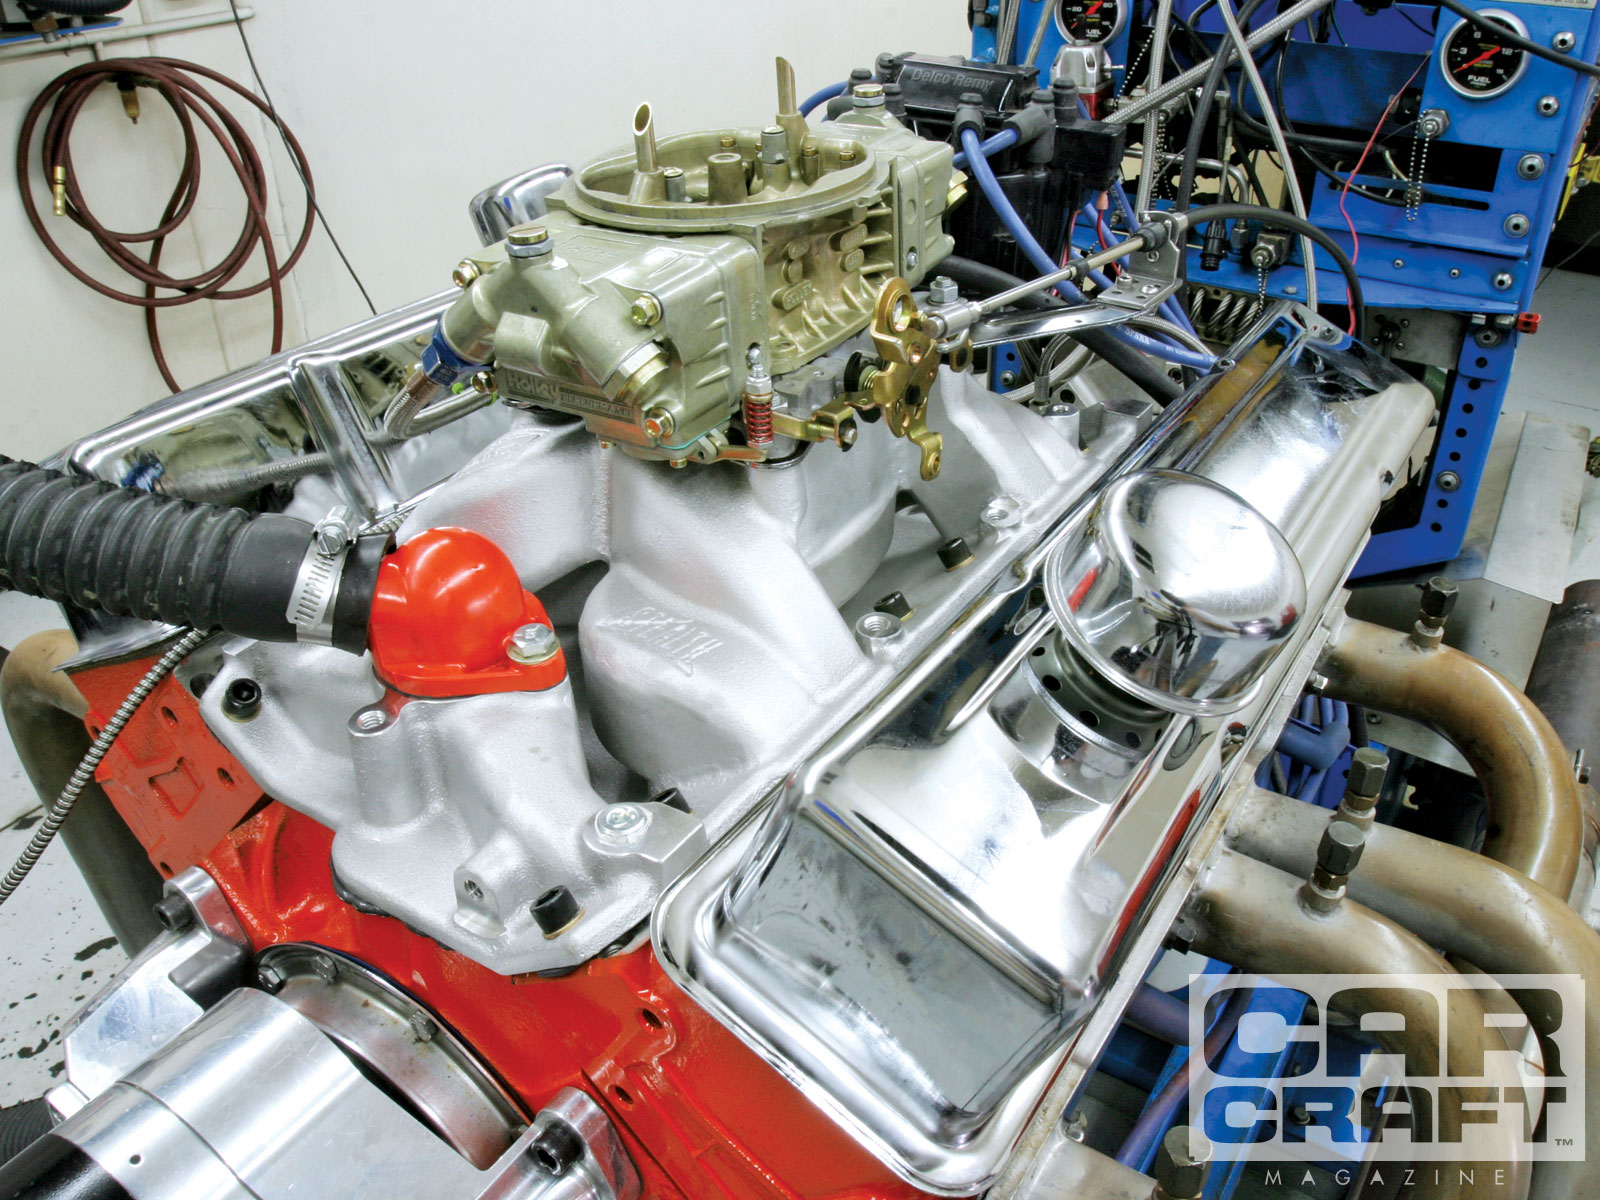 hight resolution of ccrp 1105 16 o how to build a 400ci small block chevy torque monster for 2500